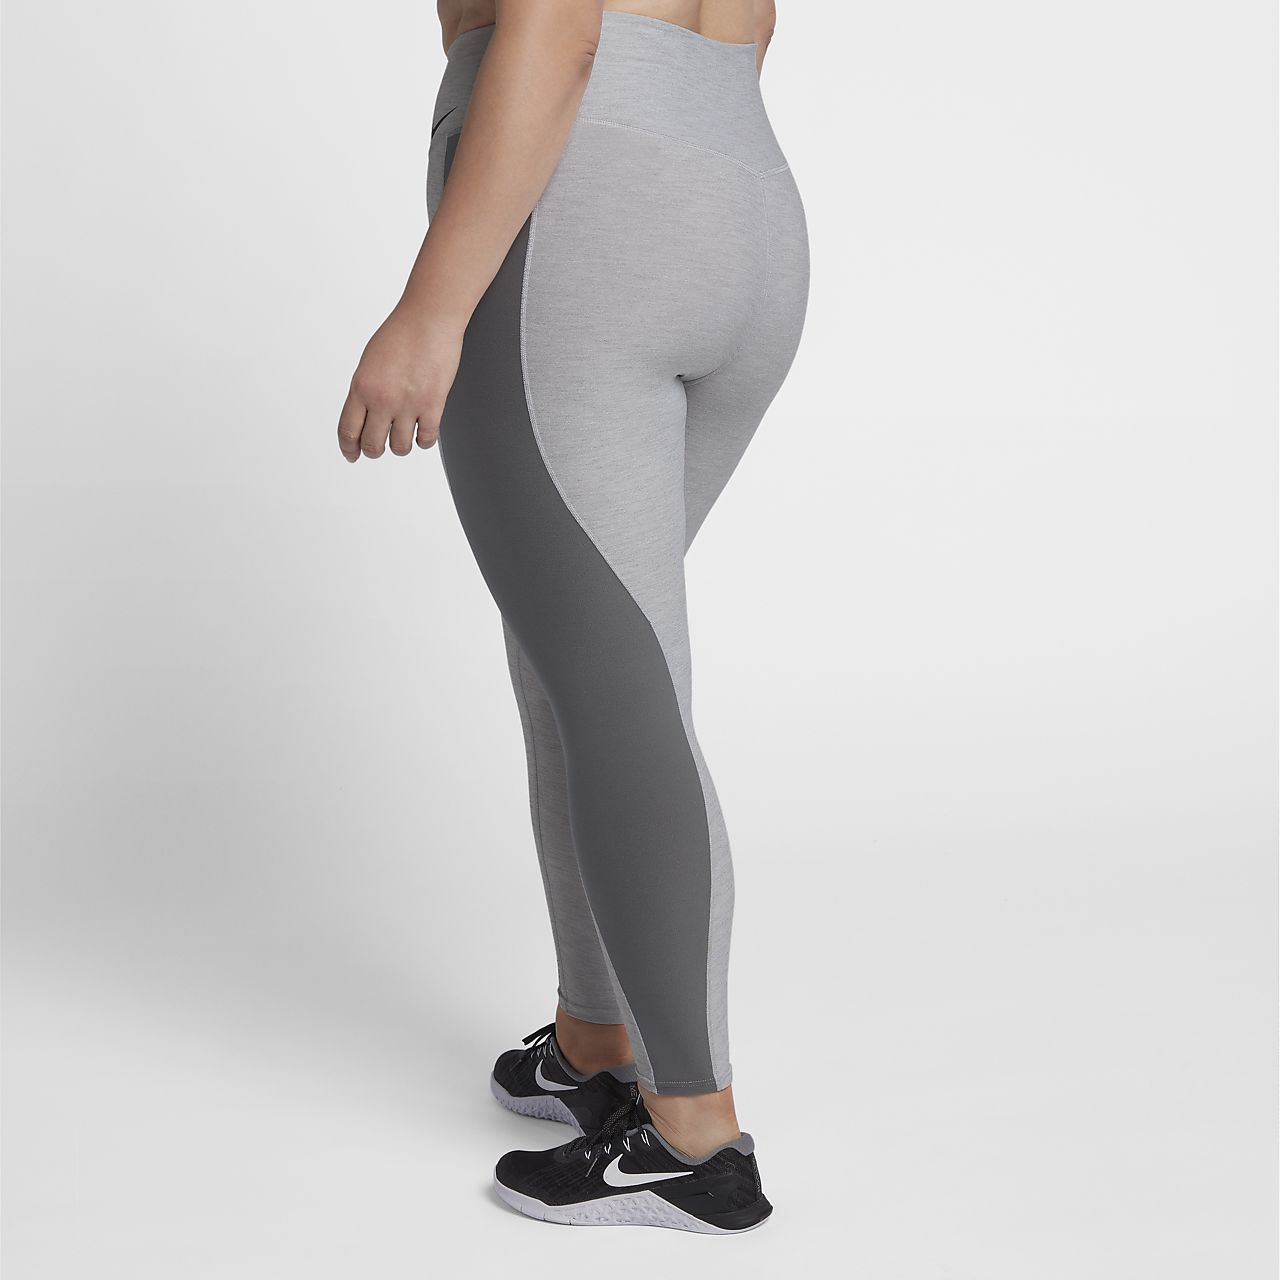 Nike Power Legend (Plus Size) Women's Training Tights